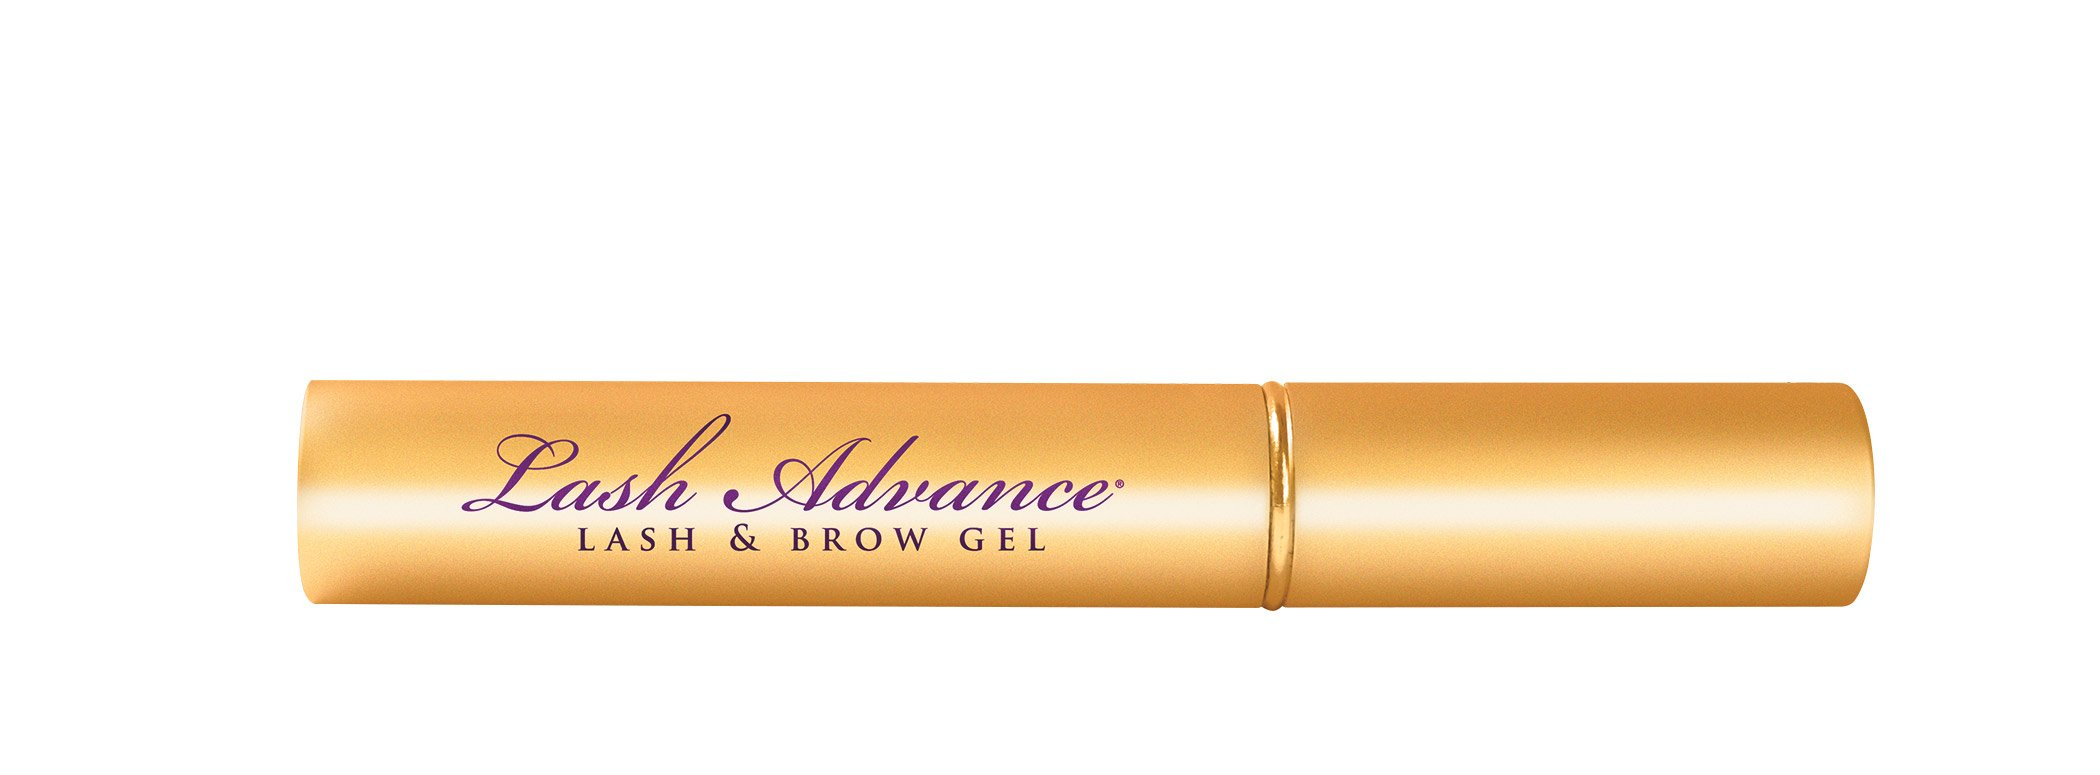 LASH ADVANCE LASH & BROW GEL This formula helps convert young hair to mature hair and supports the natural renewal cycle of lashes and brows so they look lush and healthy.